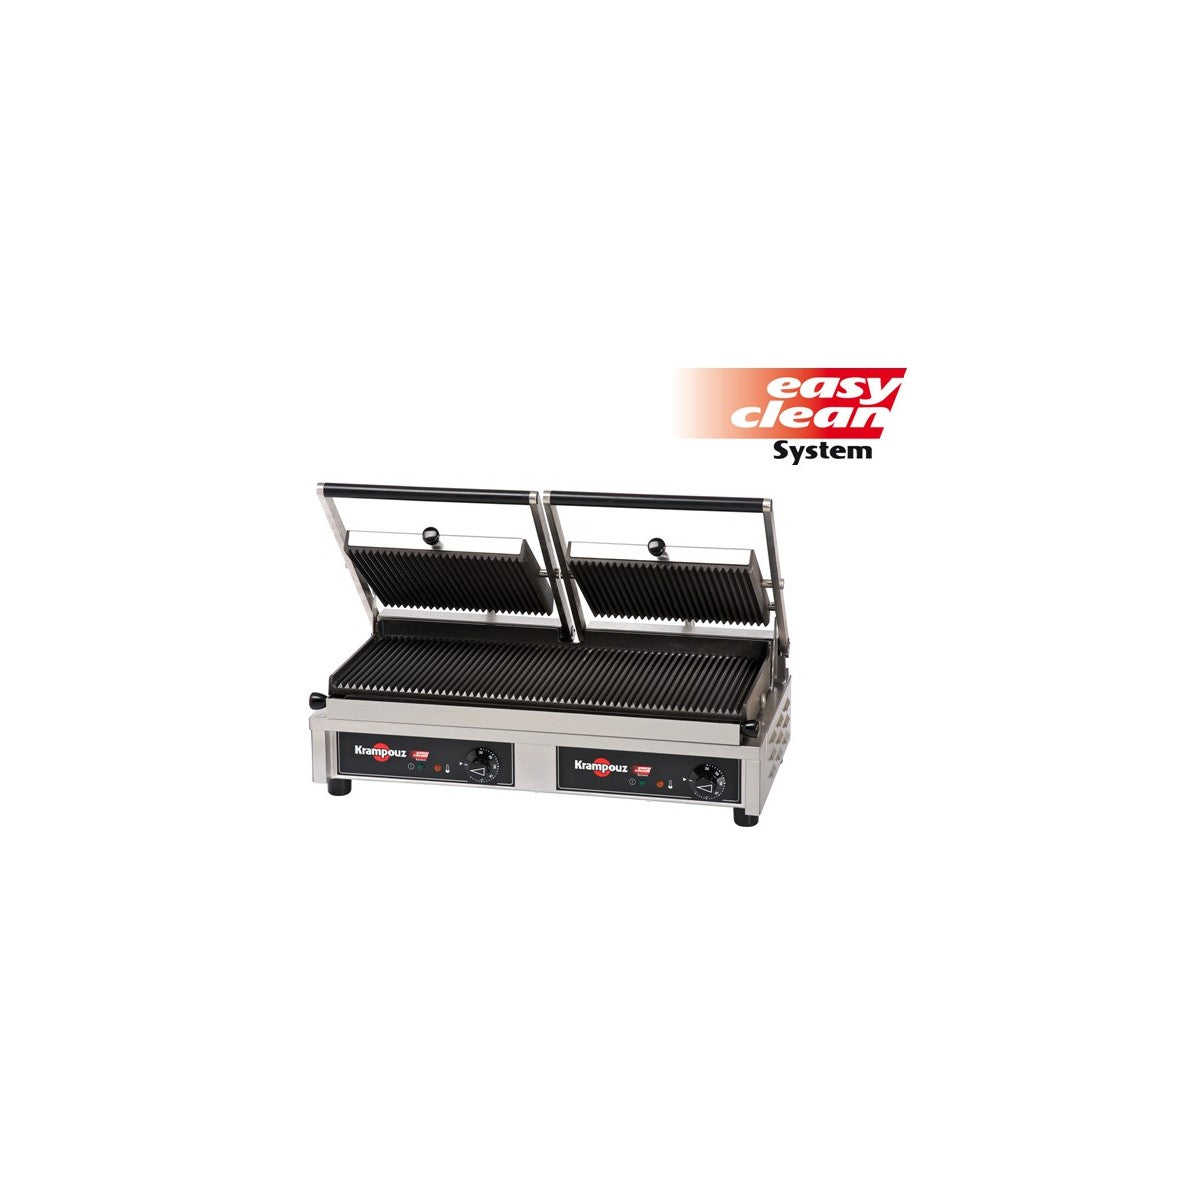 GECID5AO - Multi Contact Grill Large - Ribbed plates top, ribbed plate bottom - Krampouz